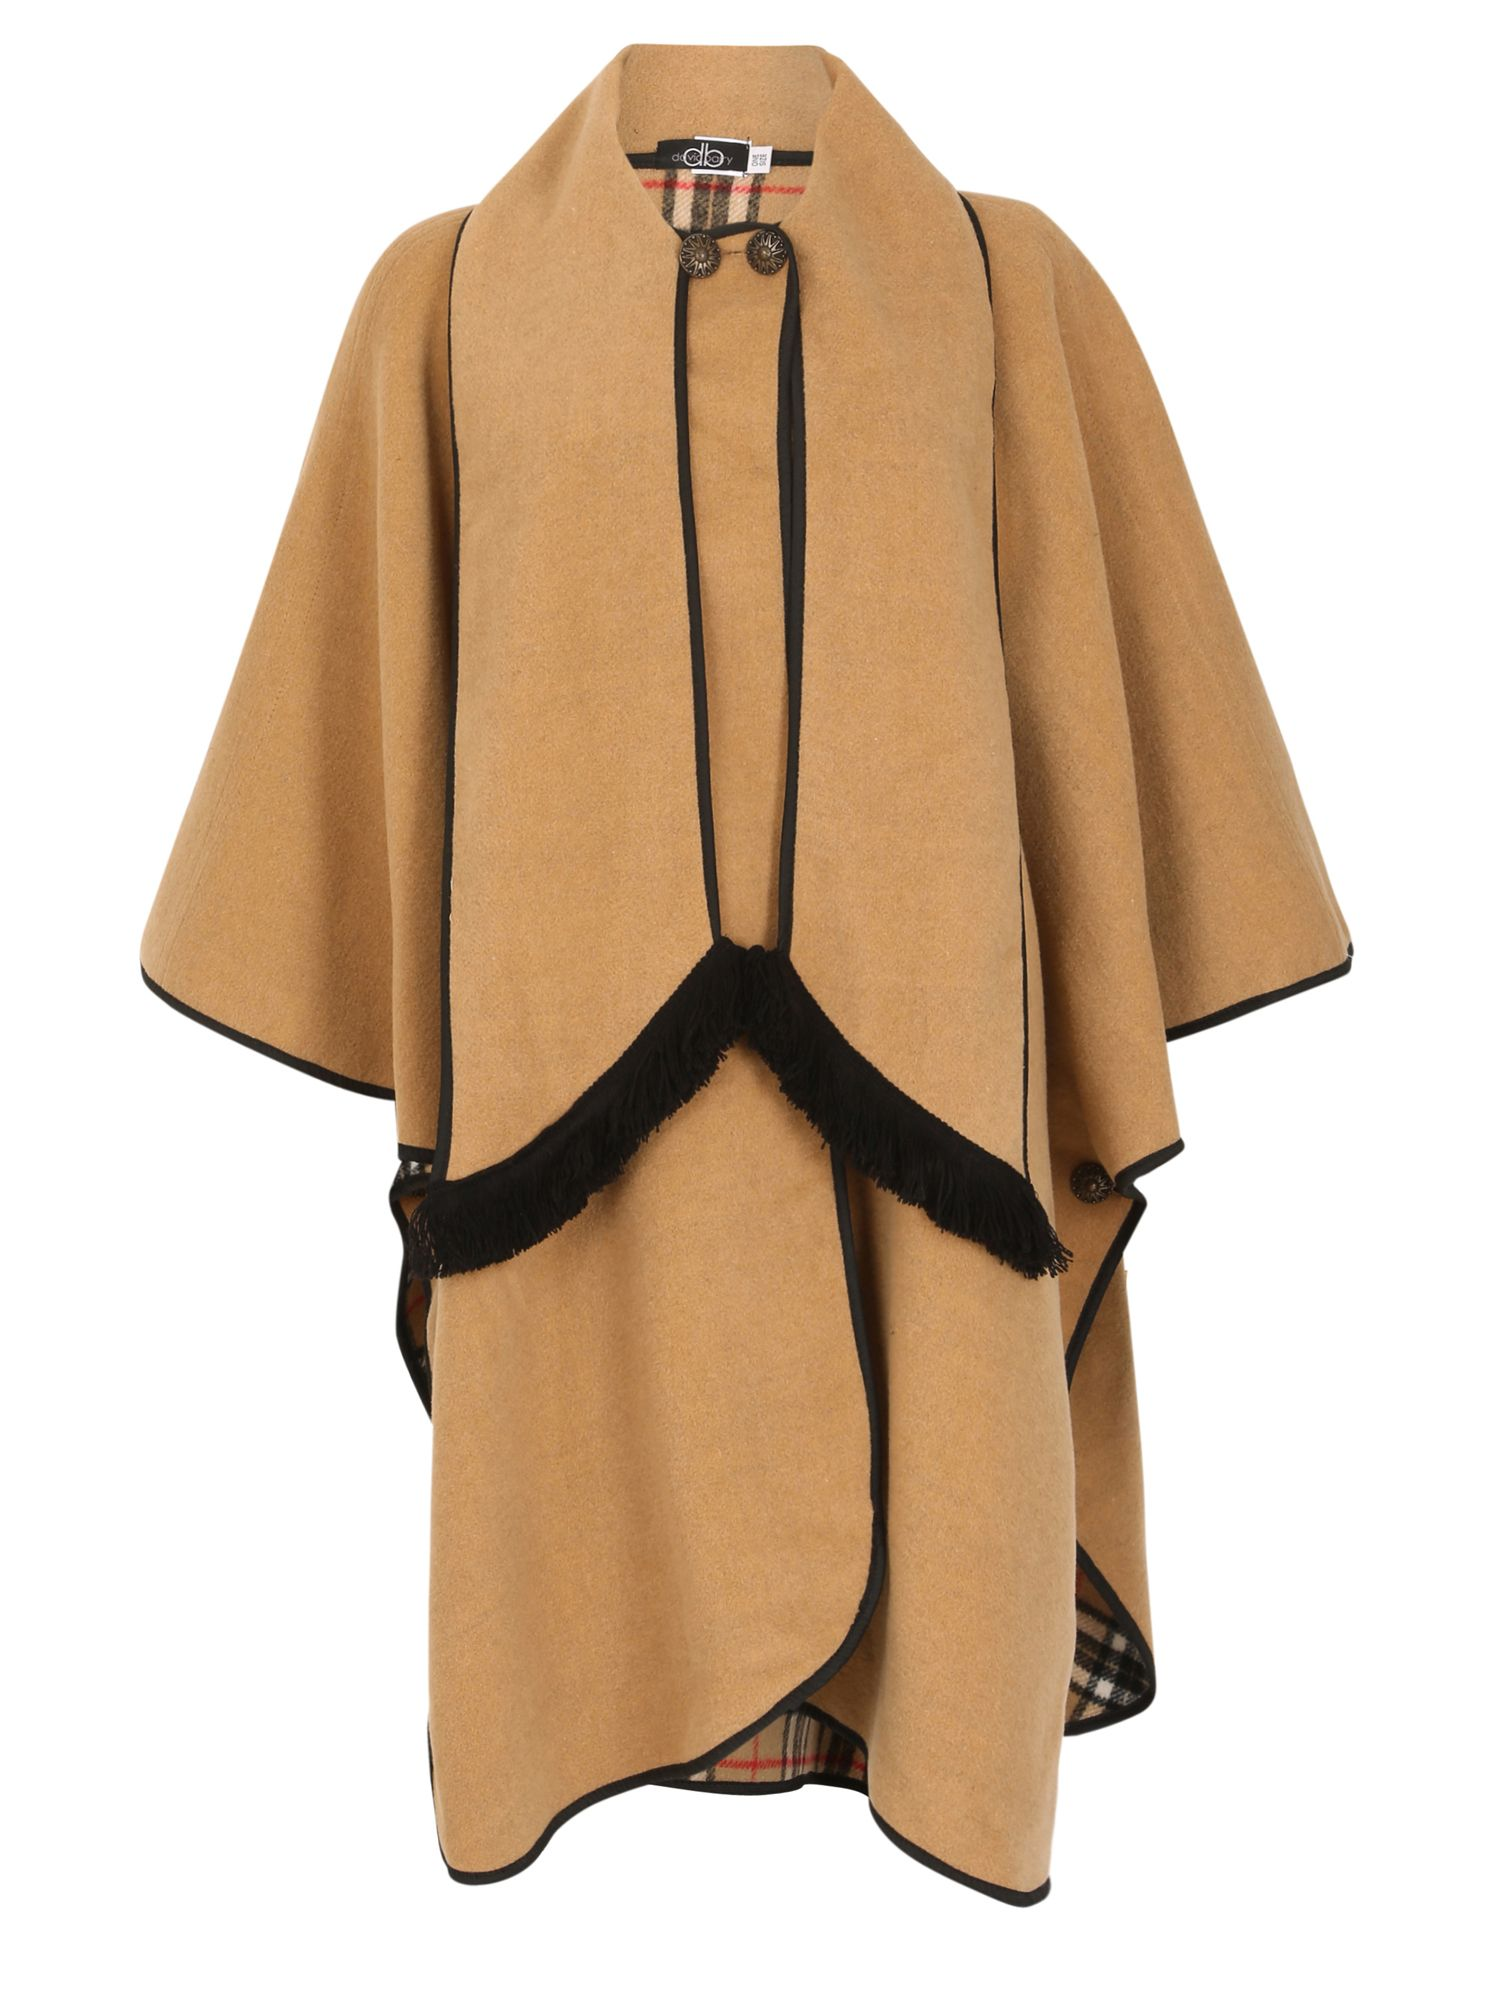 David Barry David Barry Wool Mix Cape Fully Reversible, Beige